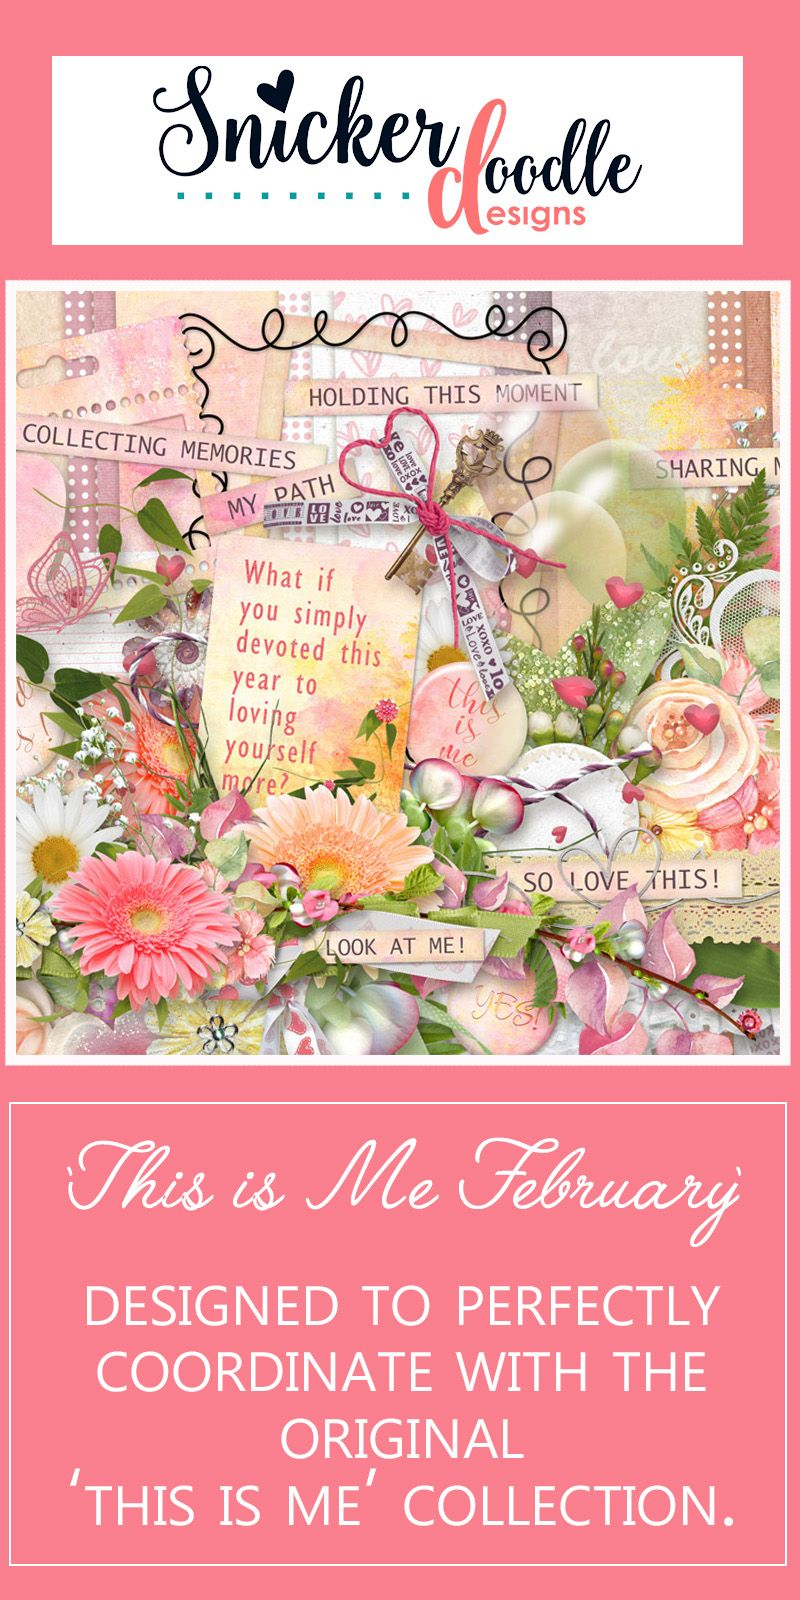 Easily scrap the things that capture your heart and passion, with lovely pastel flowers, vibrant greenery, sparkling hearts and artsy accents. #SnickerdoodleDesigns #digitalscrapbooking #ThisIsMeFeb #TheDigiChick http://www.thedigichick.com/shop/This-is-Me-February.html